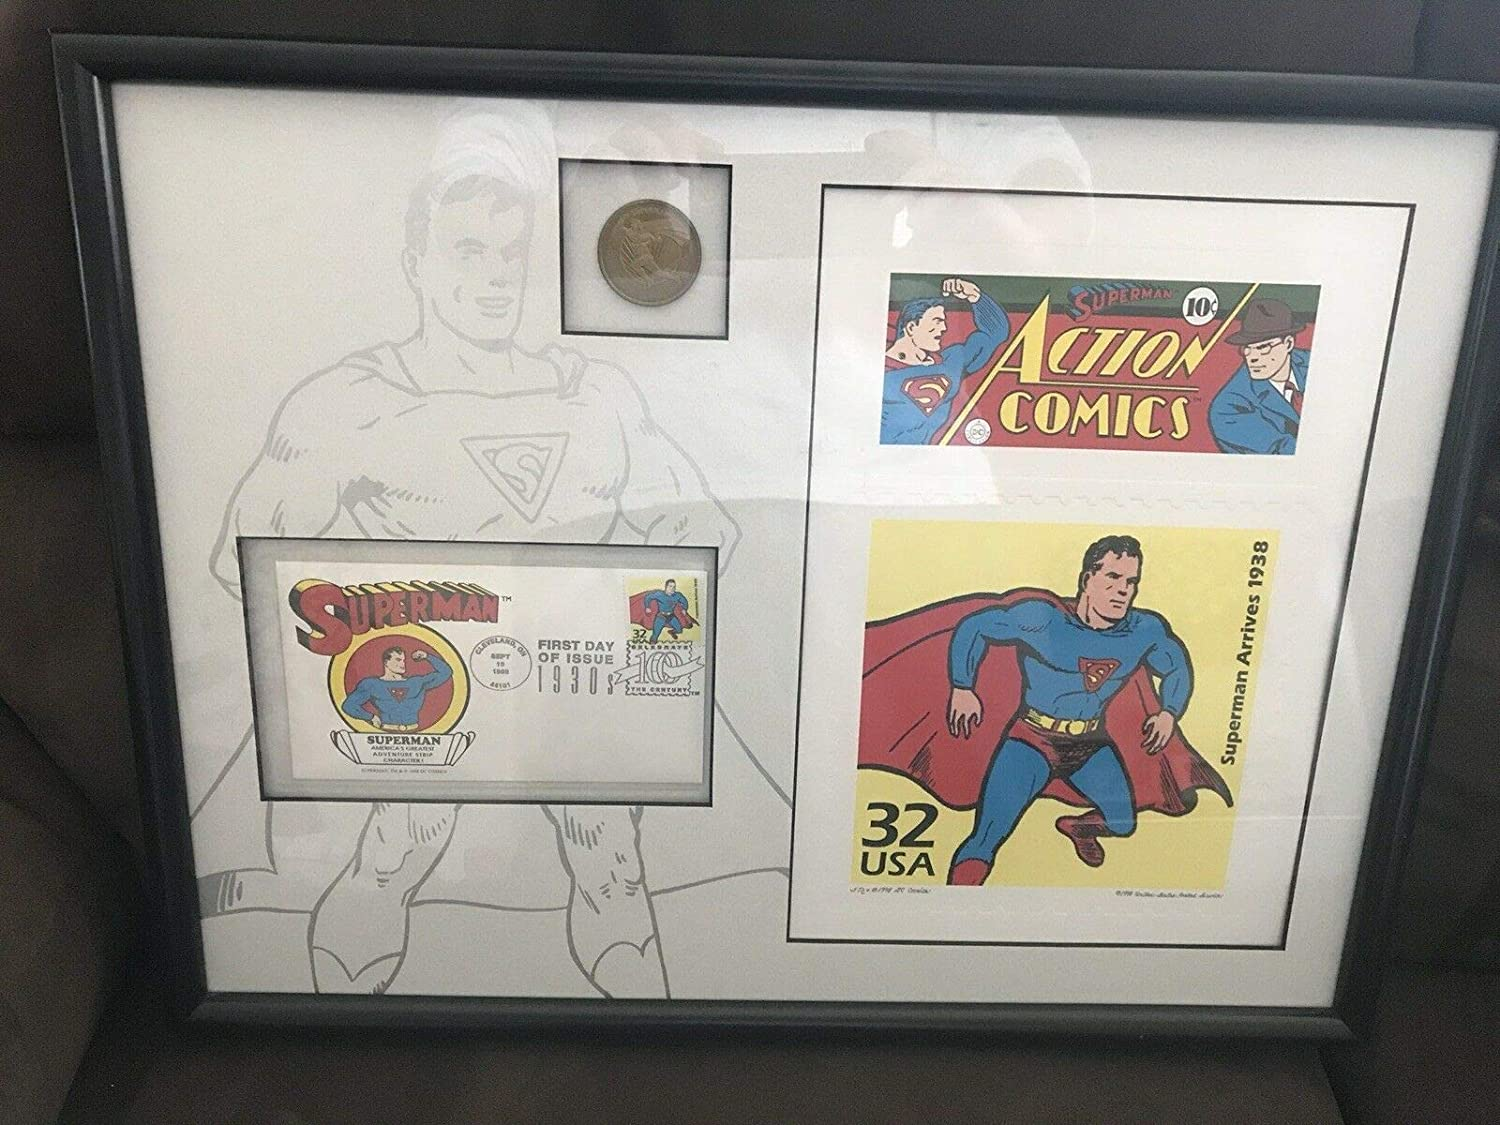 WARNER BROS GALLERY Ranking TOP7 SUPERMAN STAMPING OUT LITHO INJUSTICE shopping FRAMED